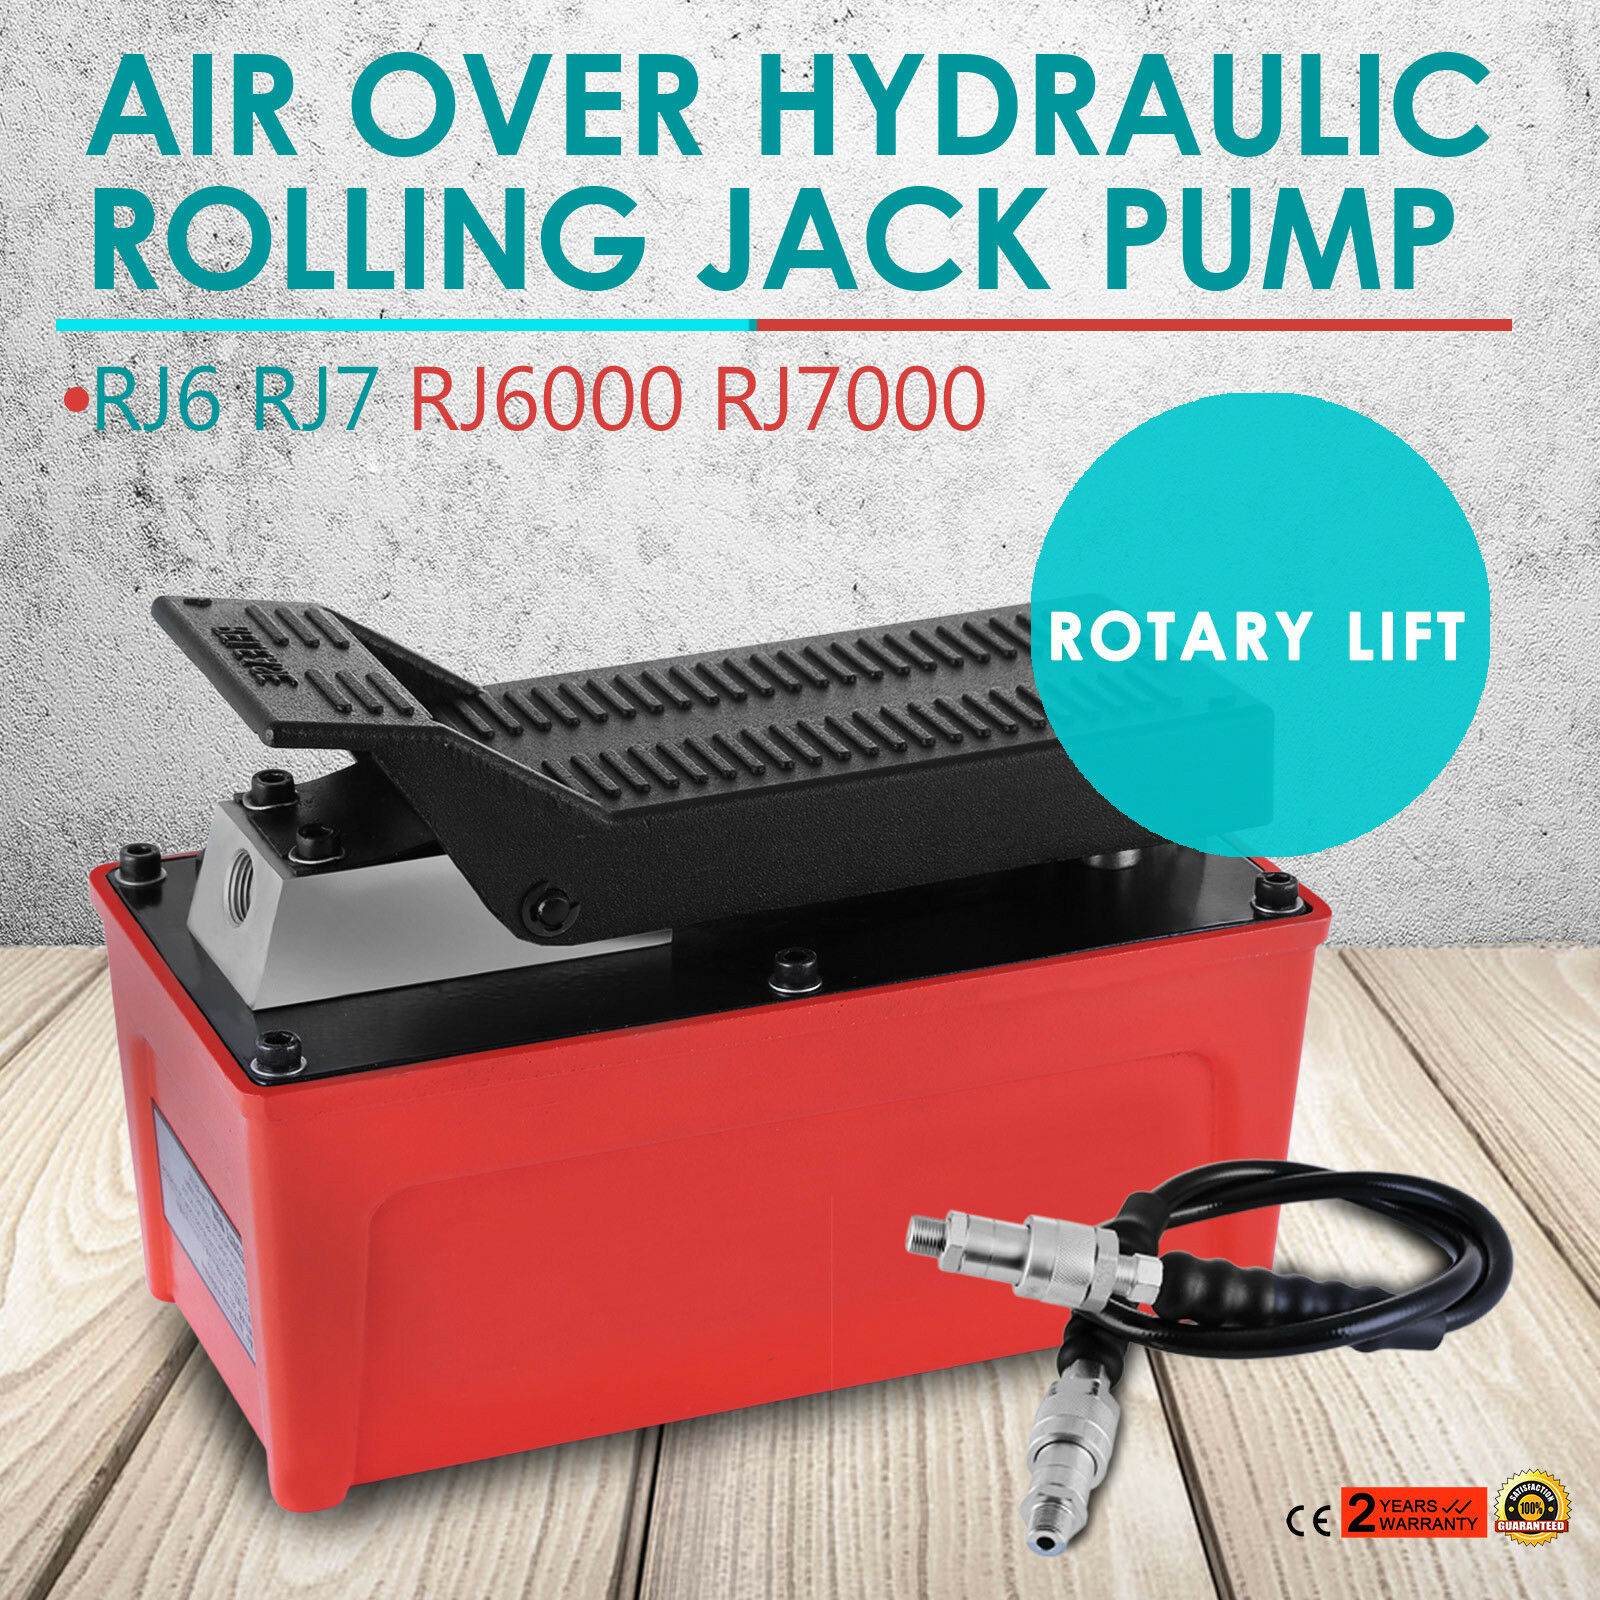 OEM ROLLING JACK PUMP AIR OVER HYDRAULIC PUMP ROTARY LIFT 10000PSI 1/2gal Hot